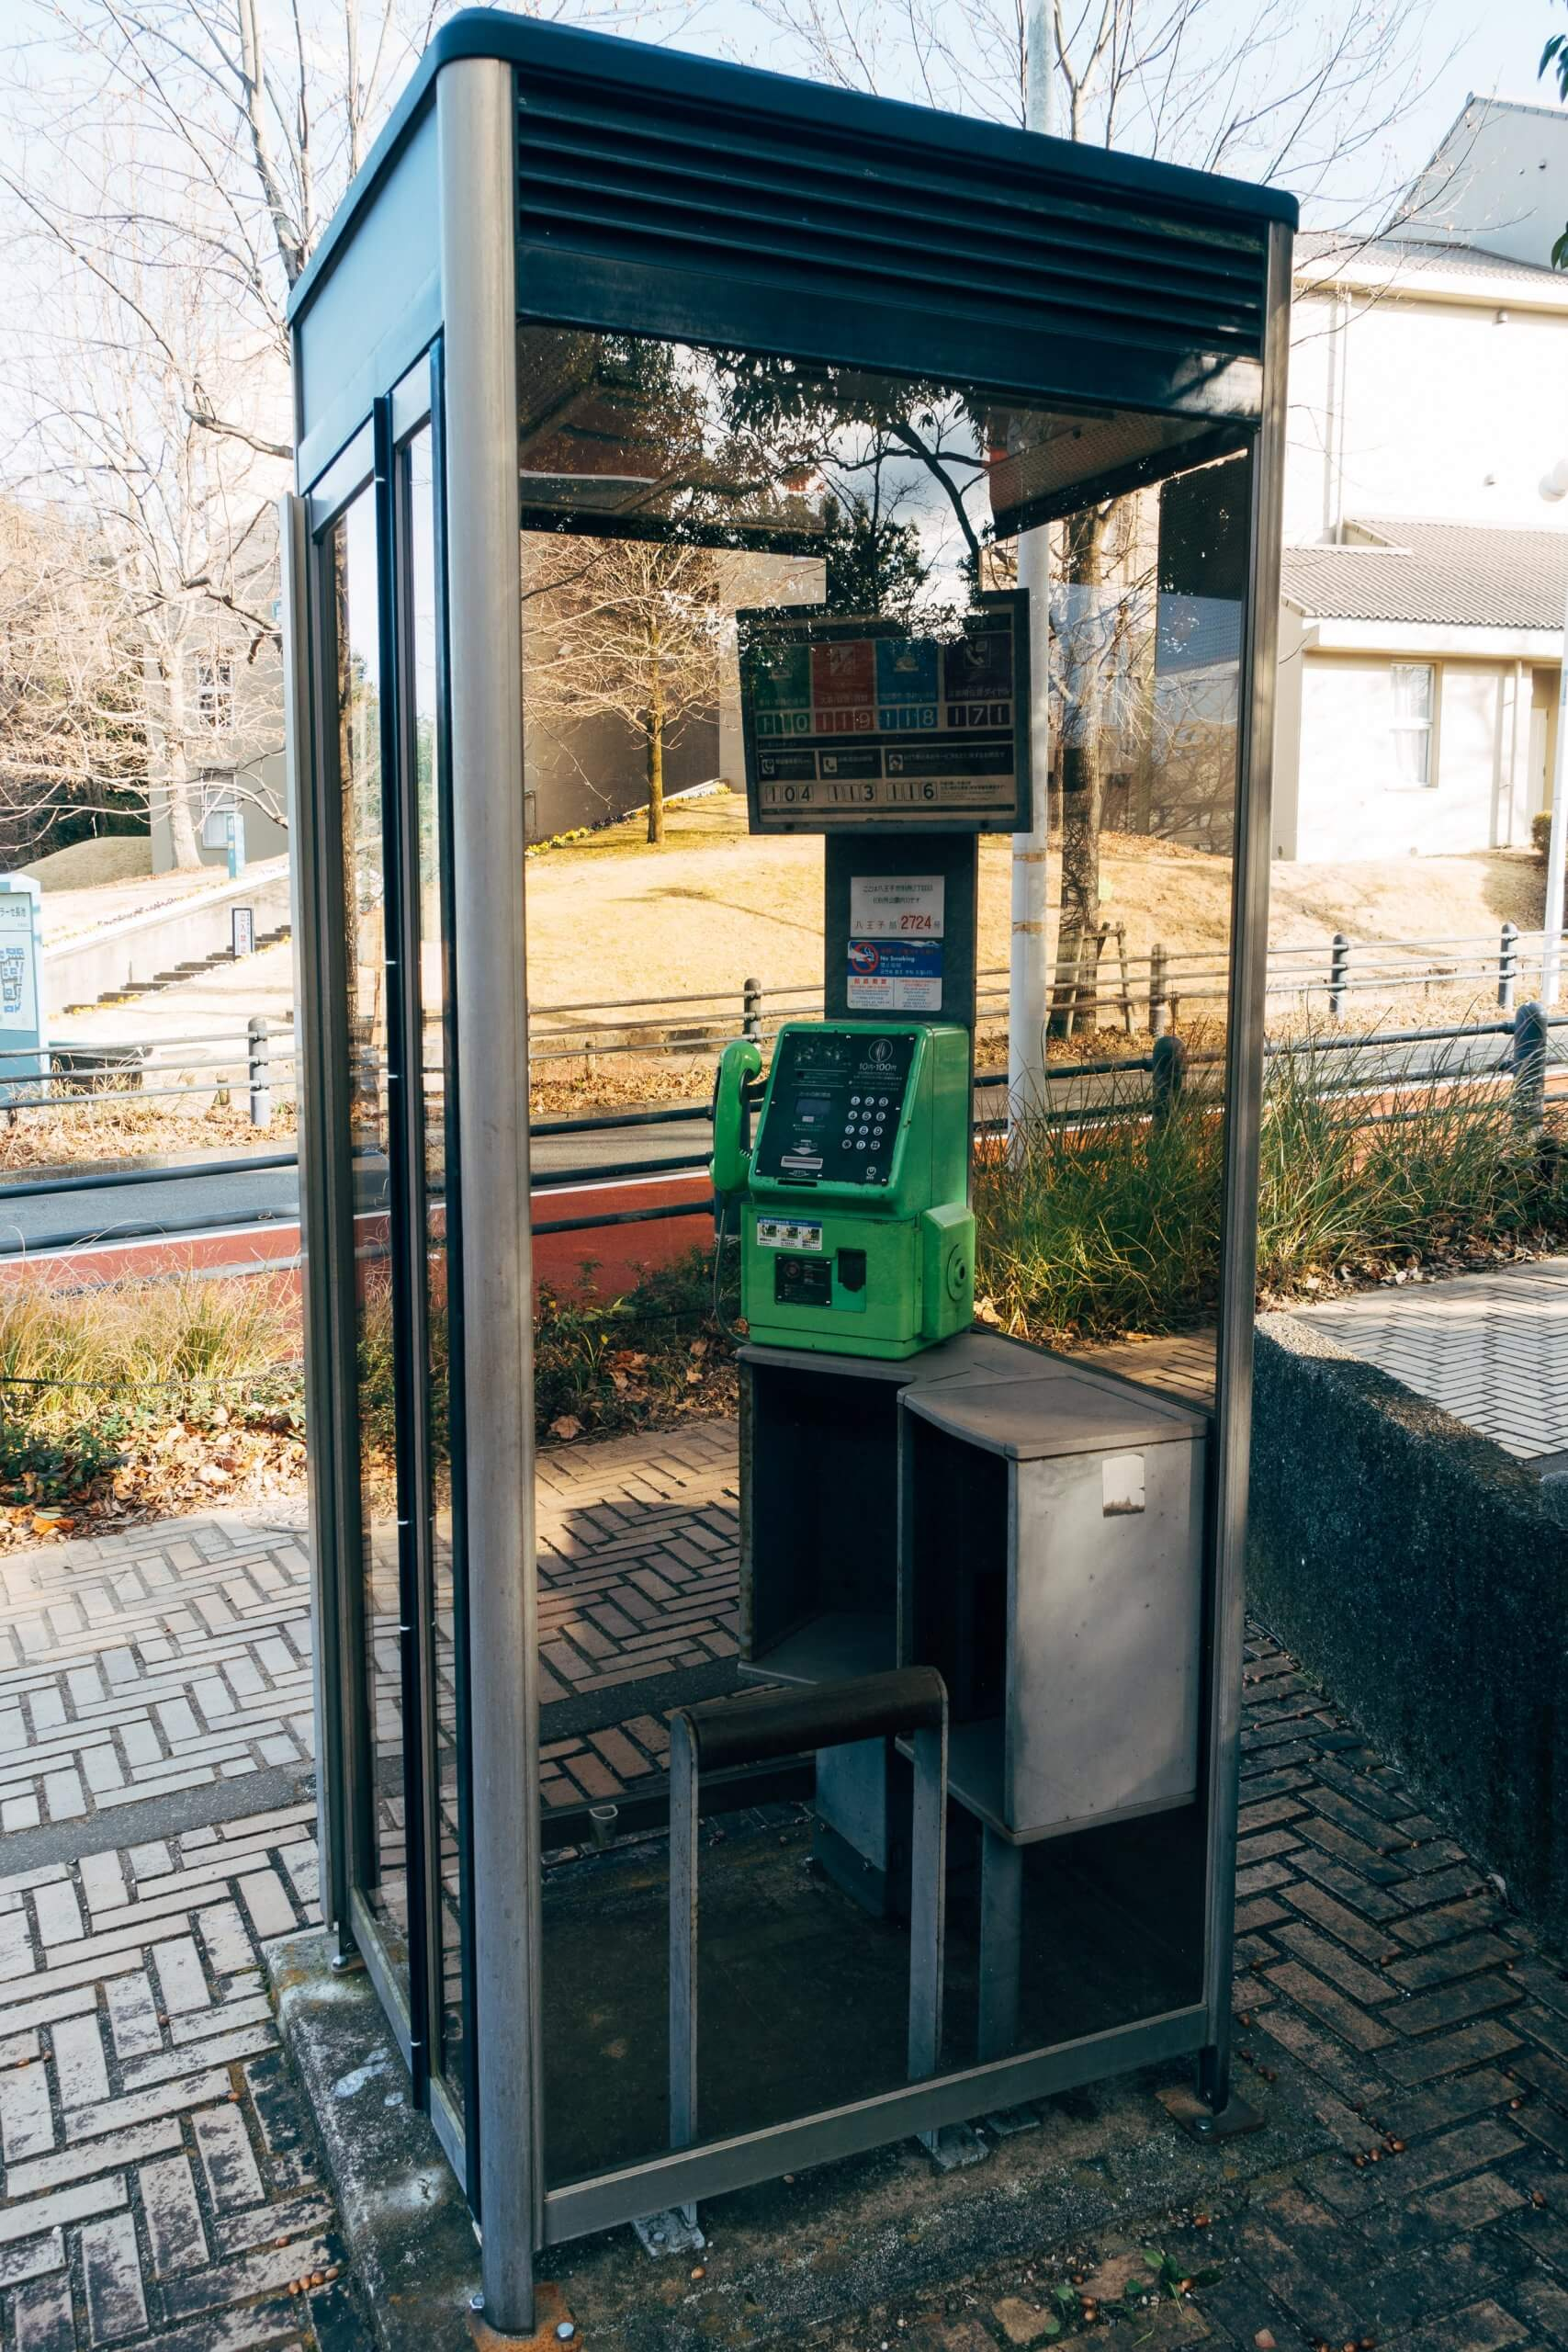 green and black atm machine